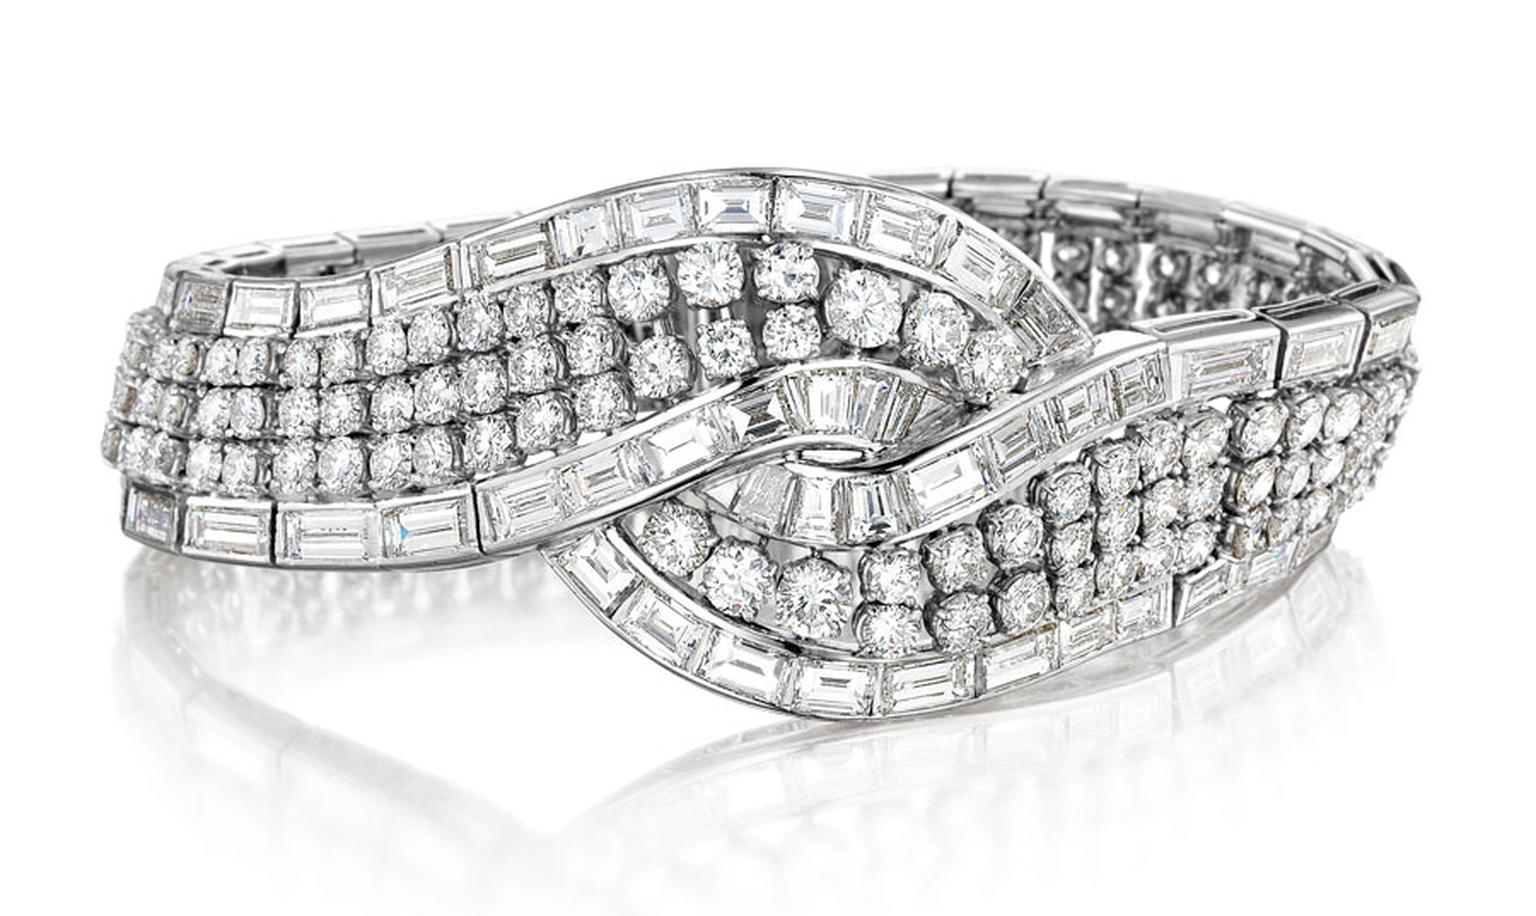 MPL-2013-Verdura-Diamond-and-Platinum-Bracelet-1958.jpg